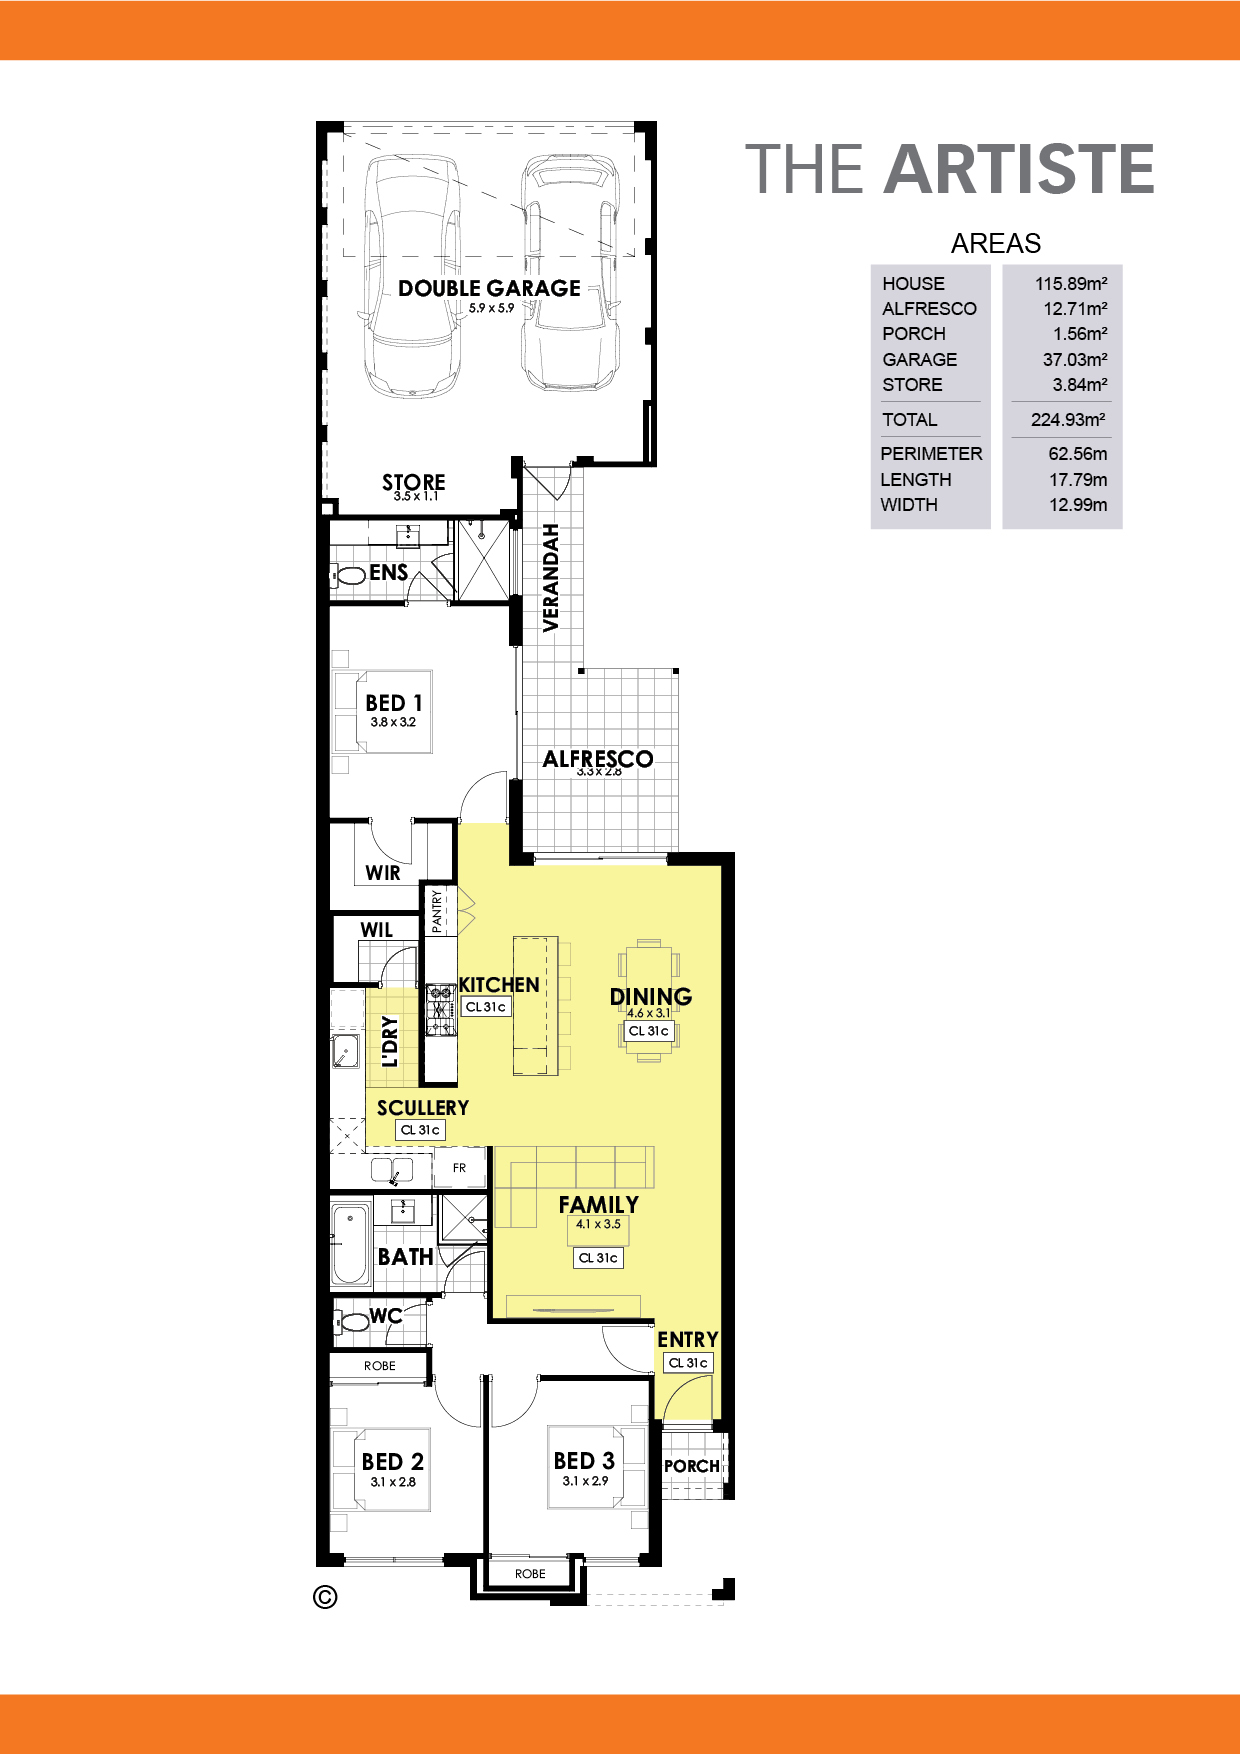 The Artiste Floorplan